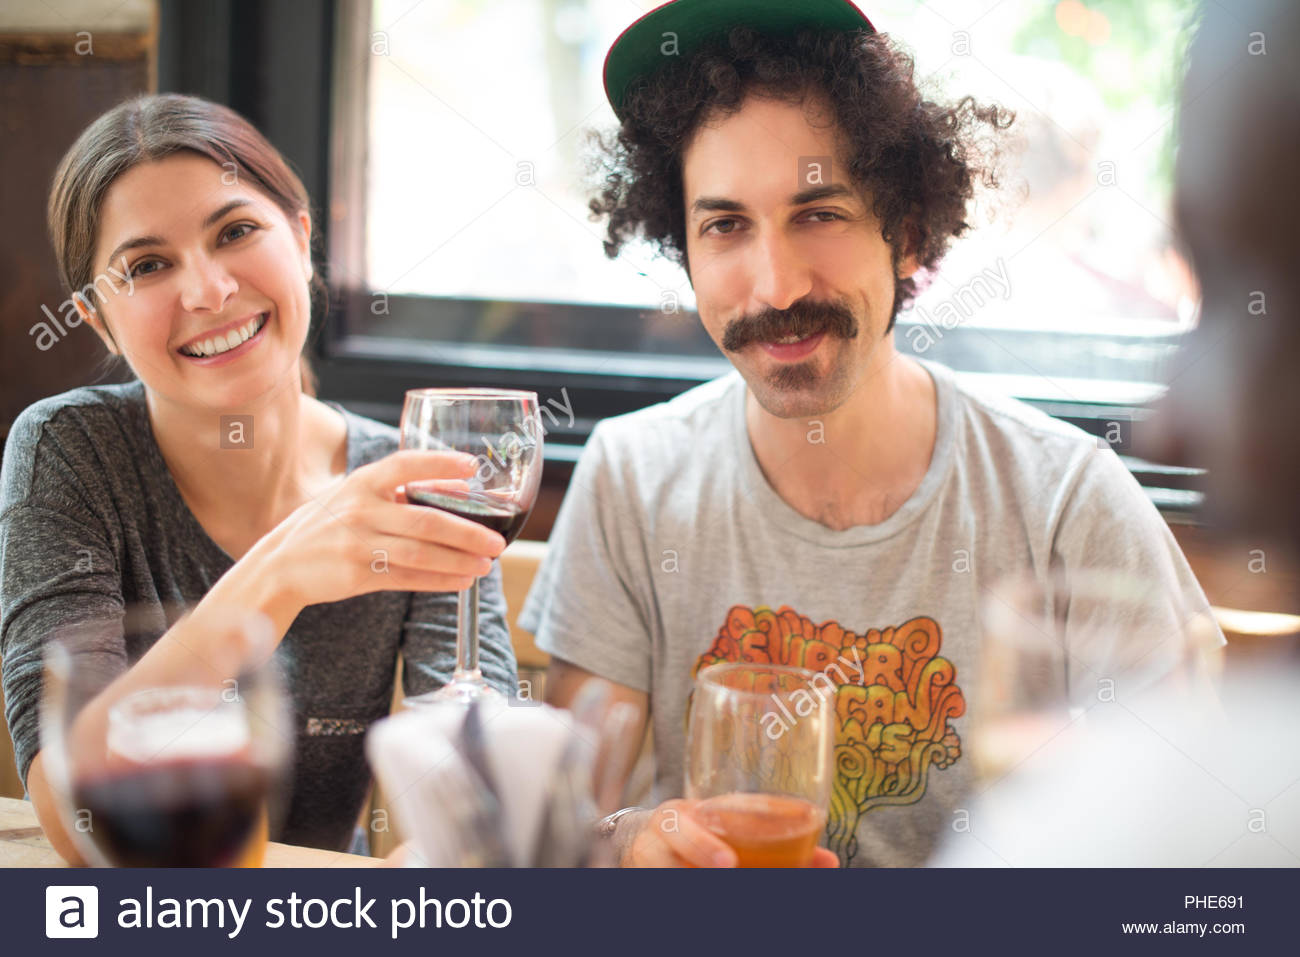 Couple with friends at bar - Stock Image